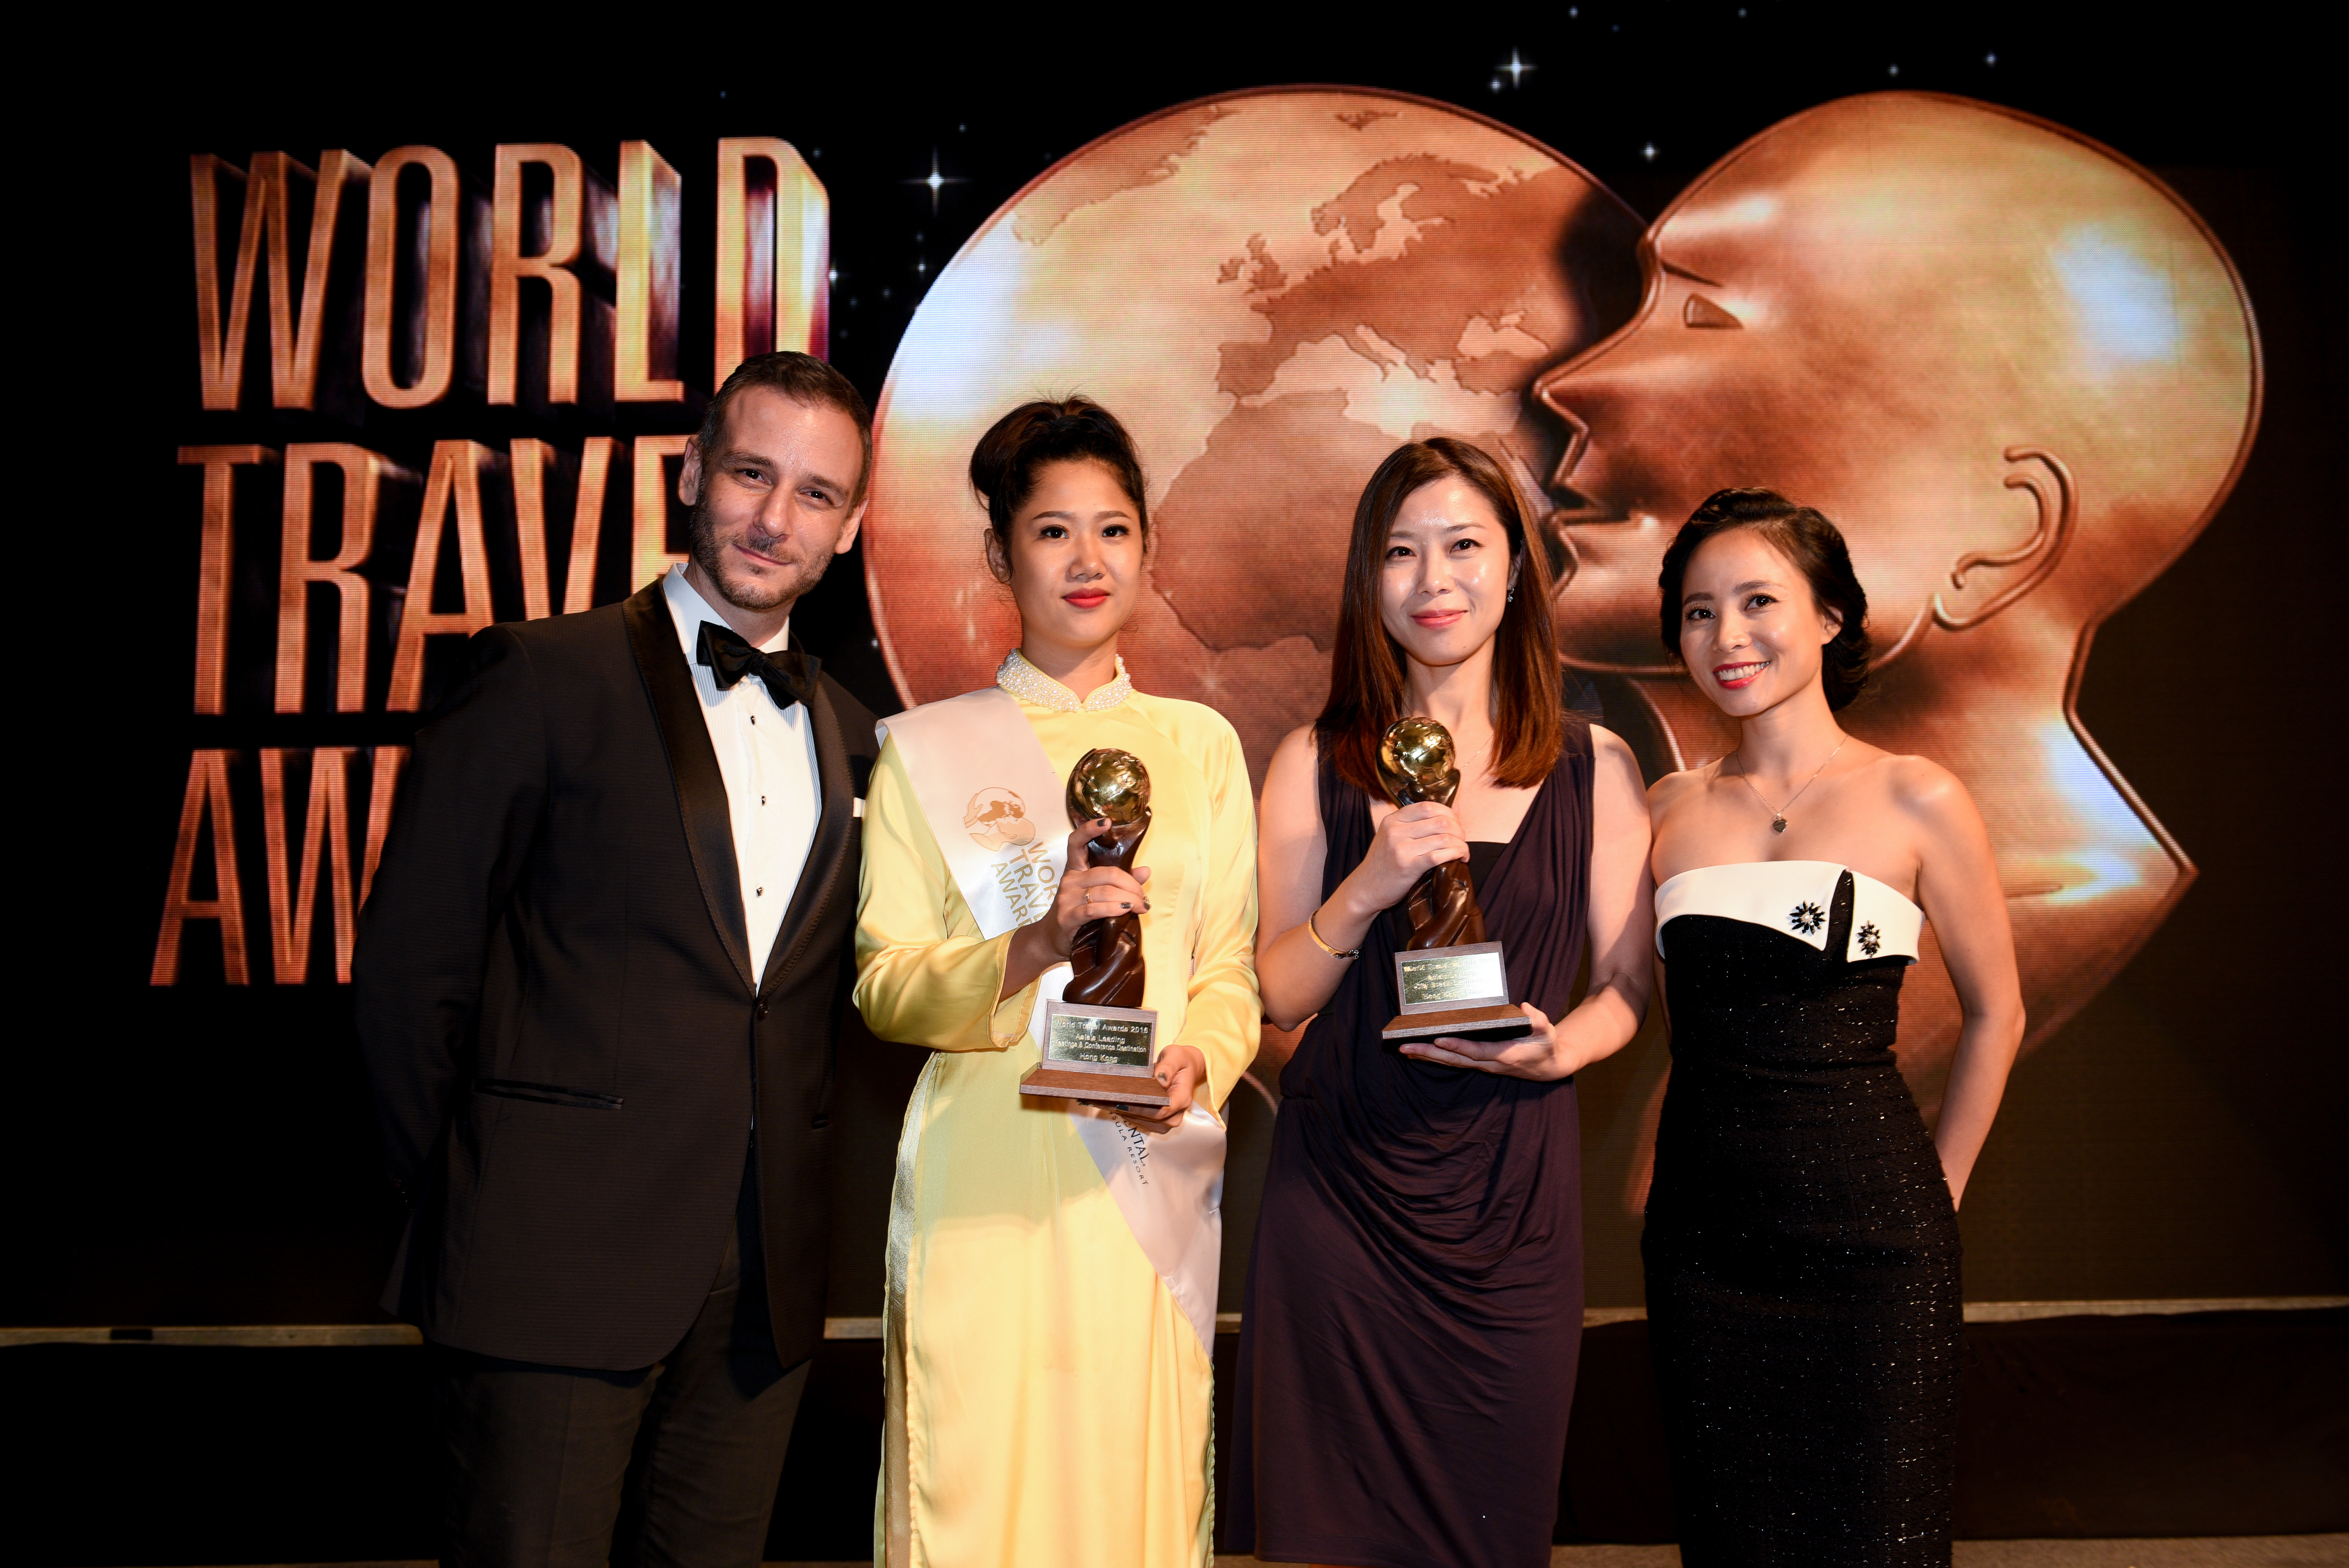 Hong Kong Leads Winners at 23rd World Travel Awards 2016 with Two Prestigious Awards